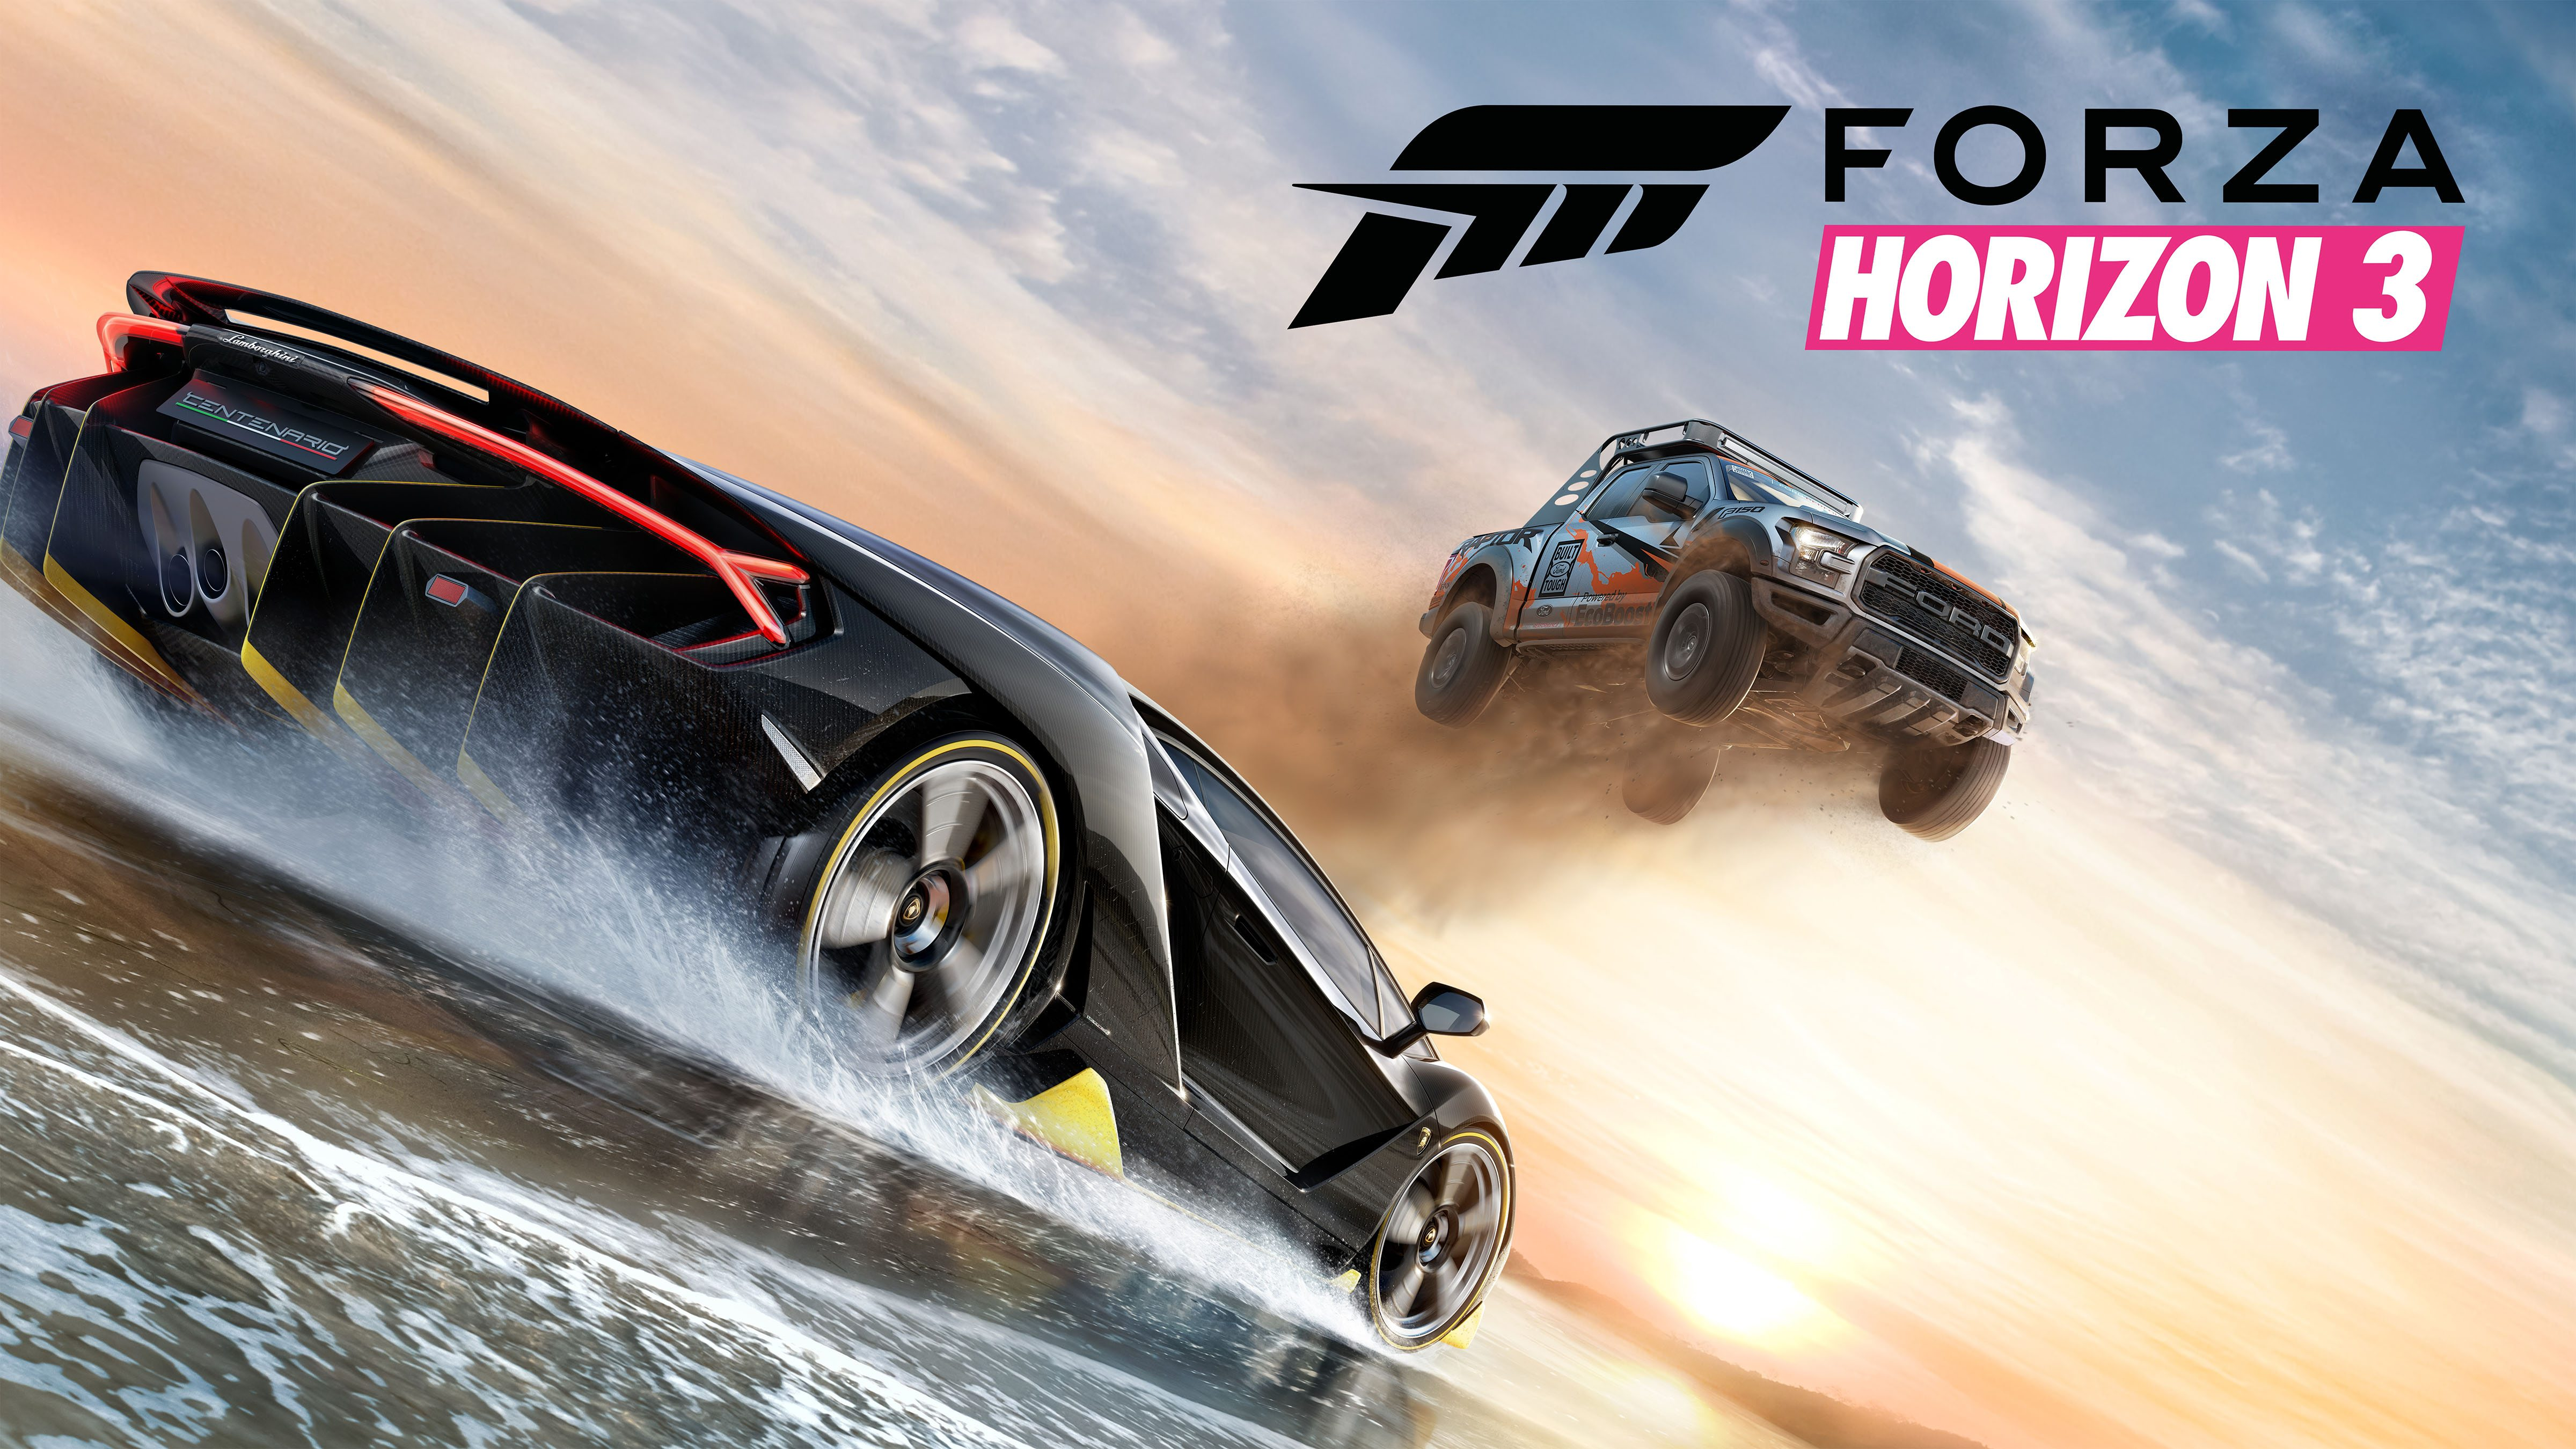 Forza Horizon 3 Announced with 4-player Co-Op in Australian Outback